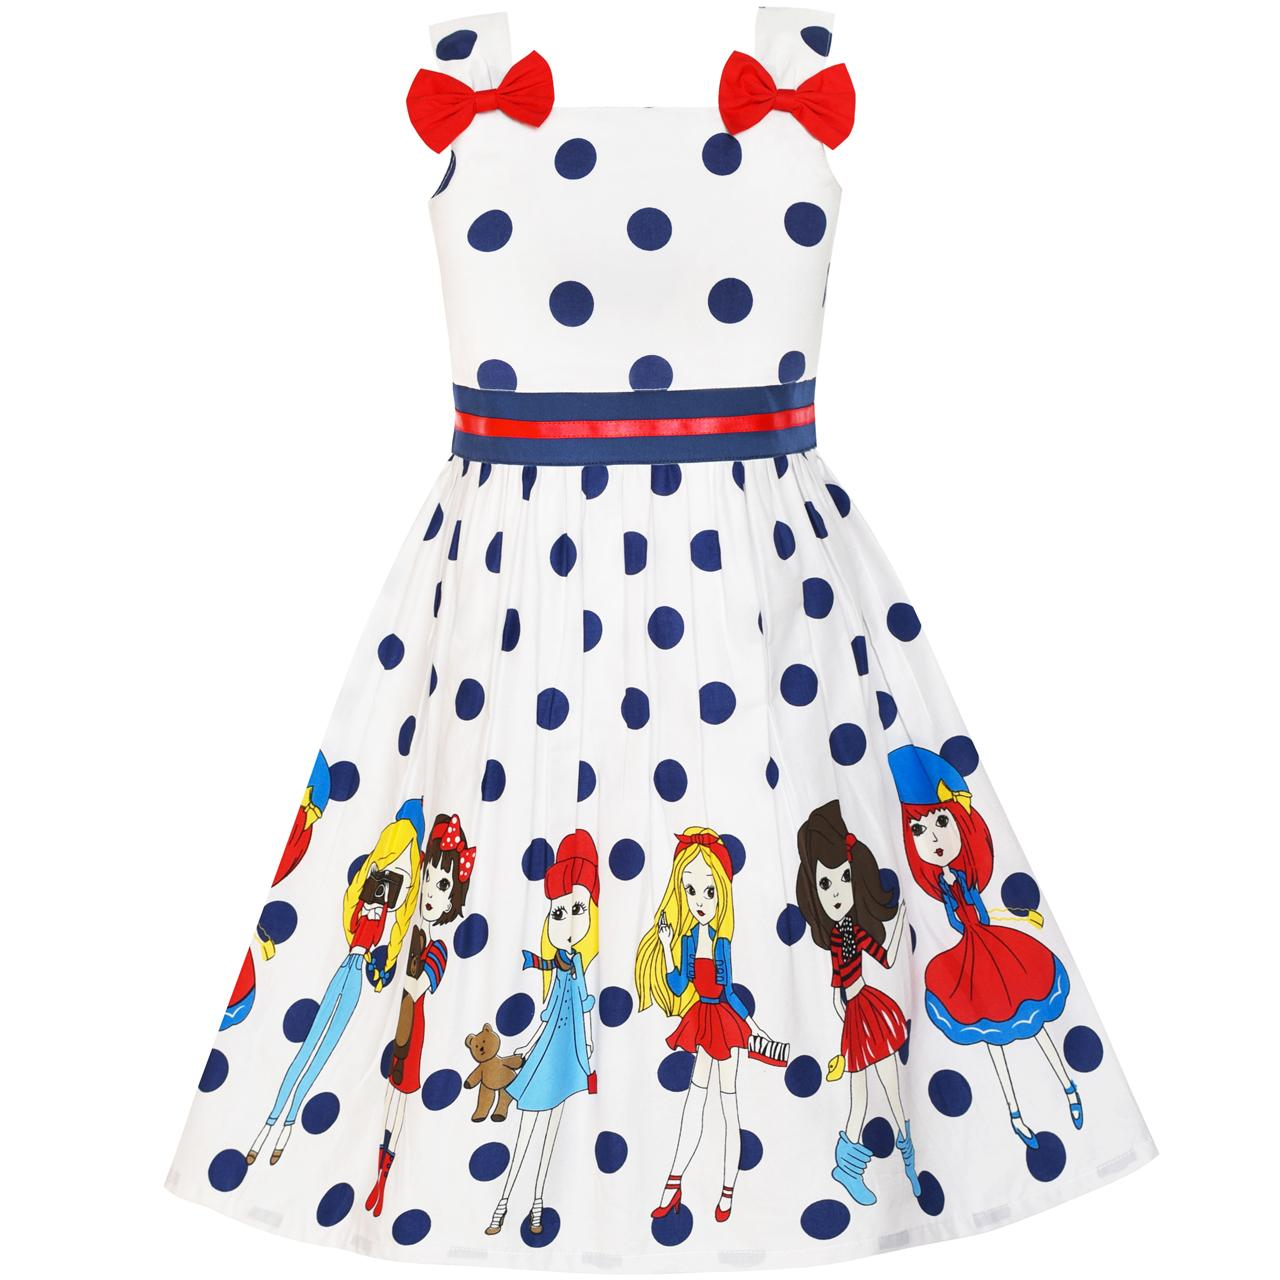 Sunny Fashion Girls Dress Cartoon Dot Bow Tie Summer Sundress Cotton 2018 Summer Princess Wedding Party Dresses Clothes Size 2-8 sunny fashion girls dress hi lo maxi chiffon lace polka dot necklace party 2018 summer princess wedding dresses size 7 14